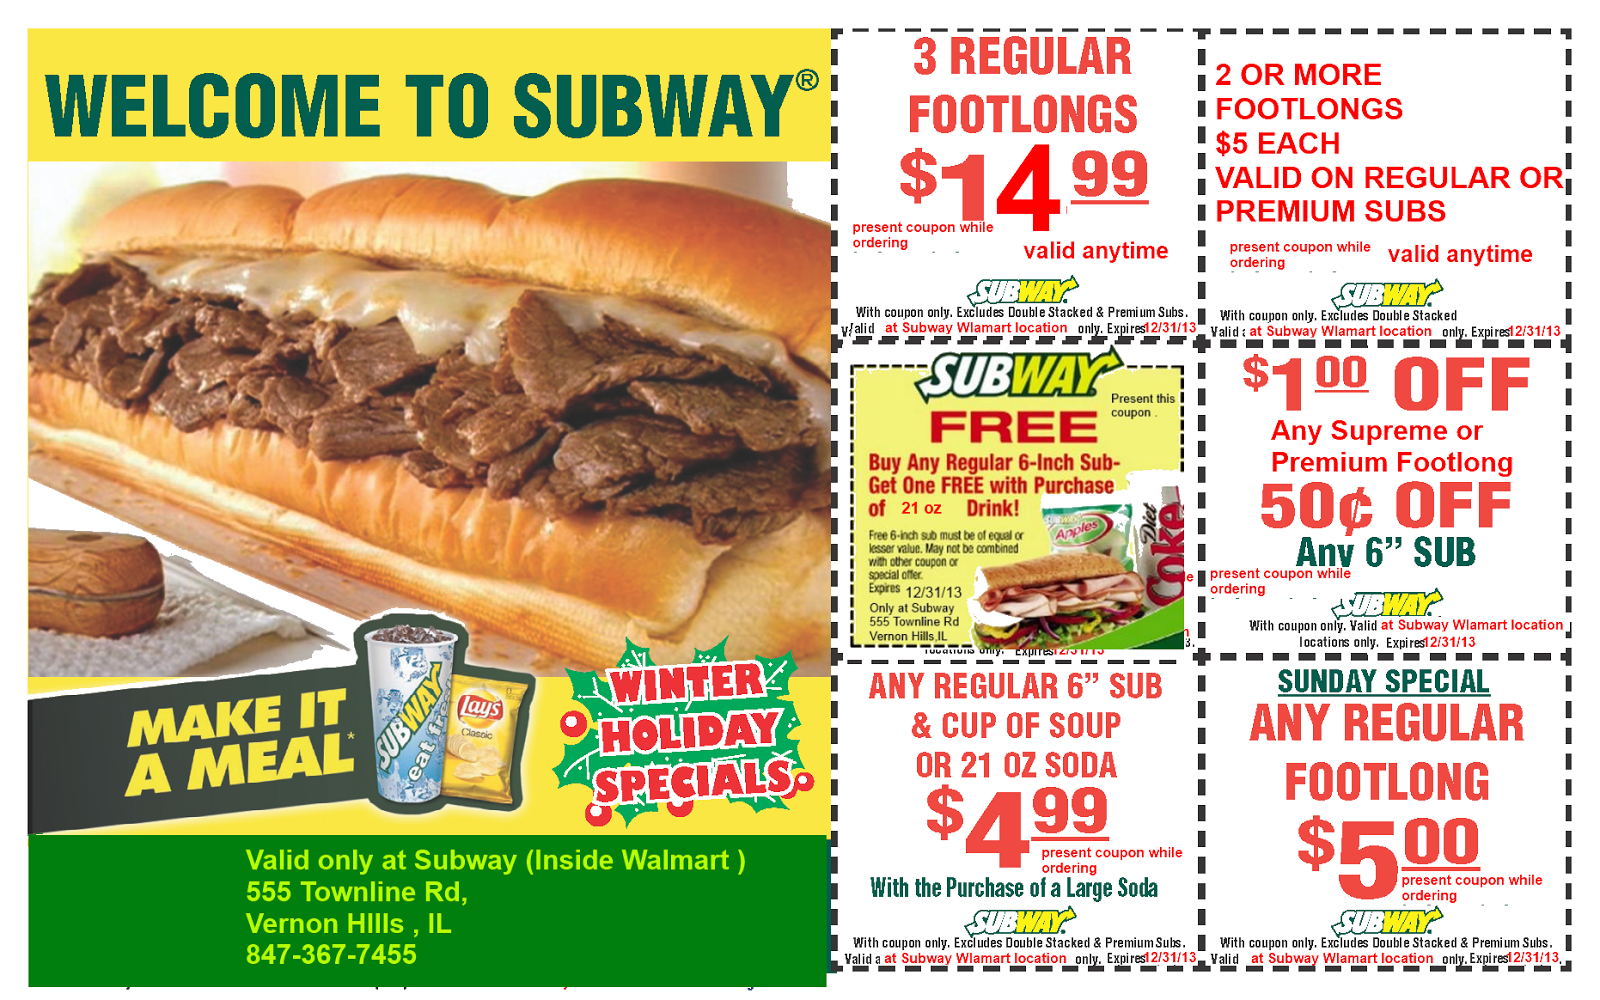 Subway Coupons November 2018 Printable : Harcourt Outlines Coupons - Free Printable Subway Coupons 2017